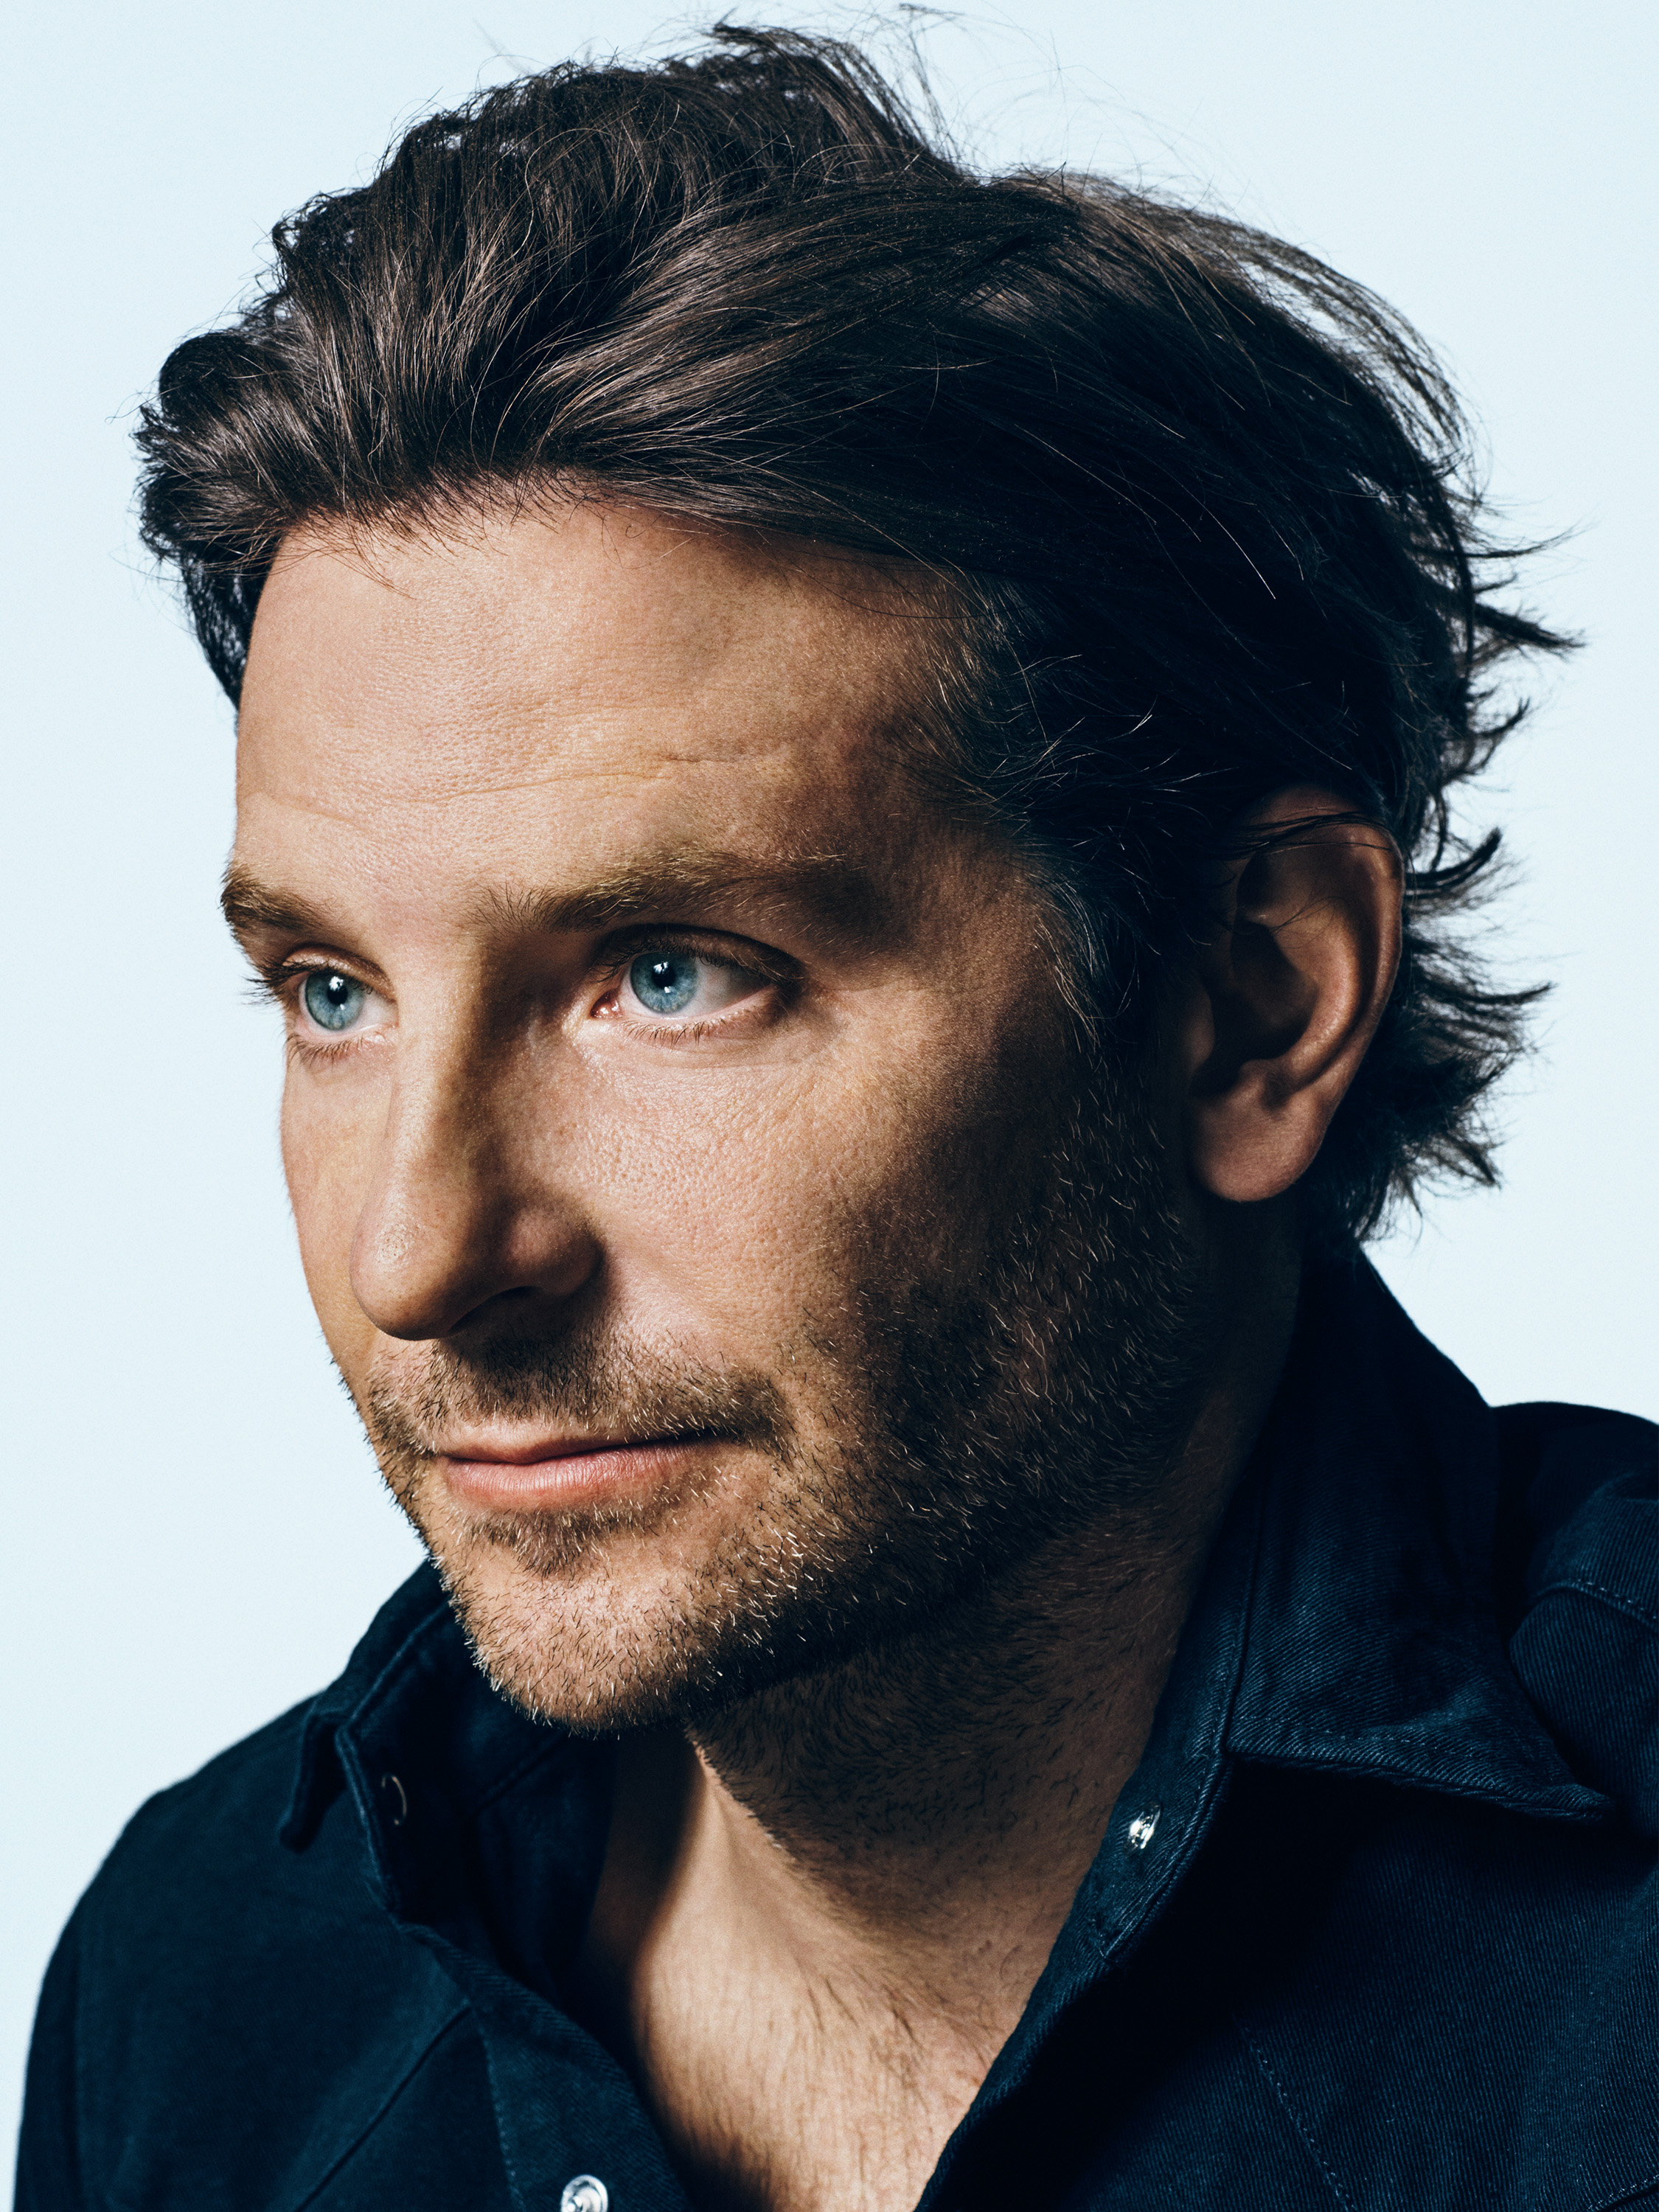 Portrait of actor Bradley Cooper photographed on Wednesday, March 4, 2015 at the TIME Magazine Studio in New York, NY.